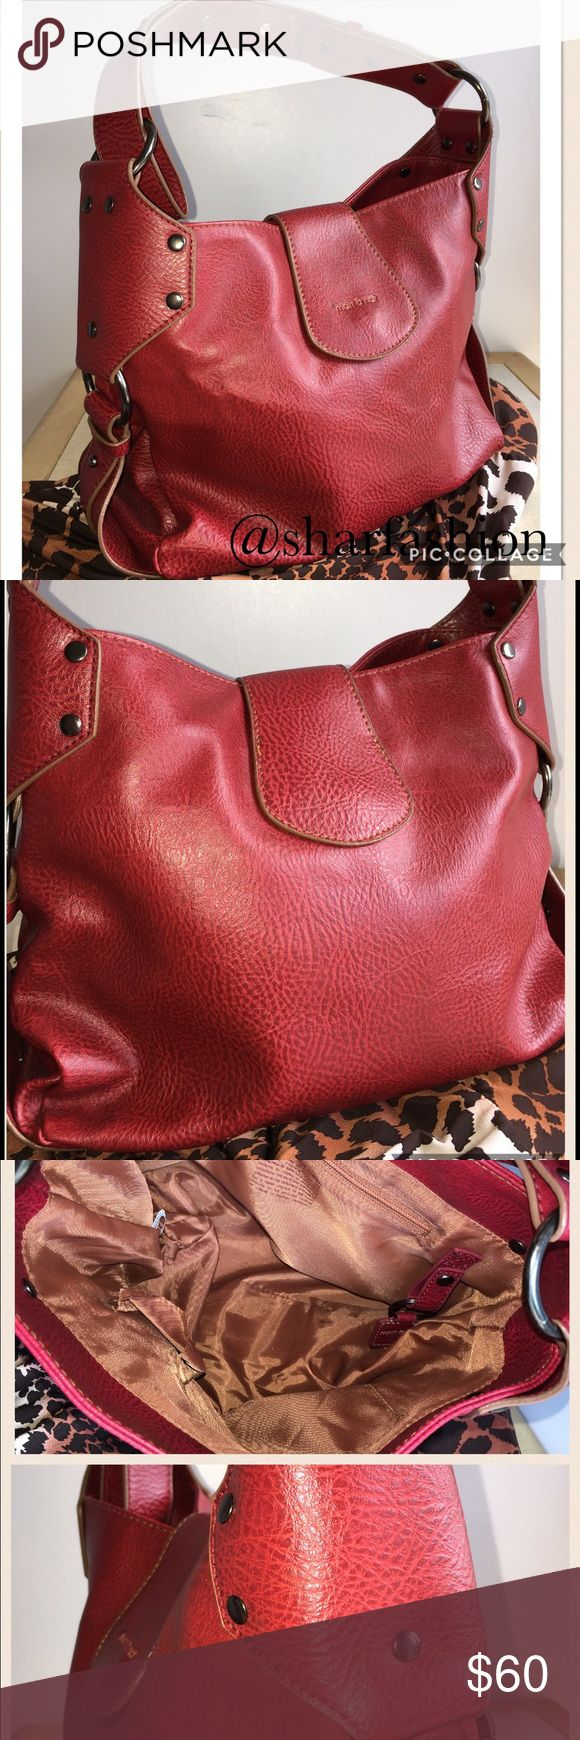 Pre Loved Red Hot purse Matt and Nat Carrie bag in red. Measures 11x7x5 with a shoulder strap drop of 15-21 inches. Vegan bag no harmed animals. Comes with a zipper pocket along with 3 small ones. It's a magnetic flap closure with an extending shoulder strap. matt and nat Bags Hobos